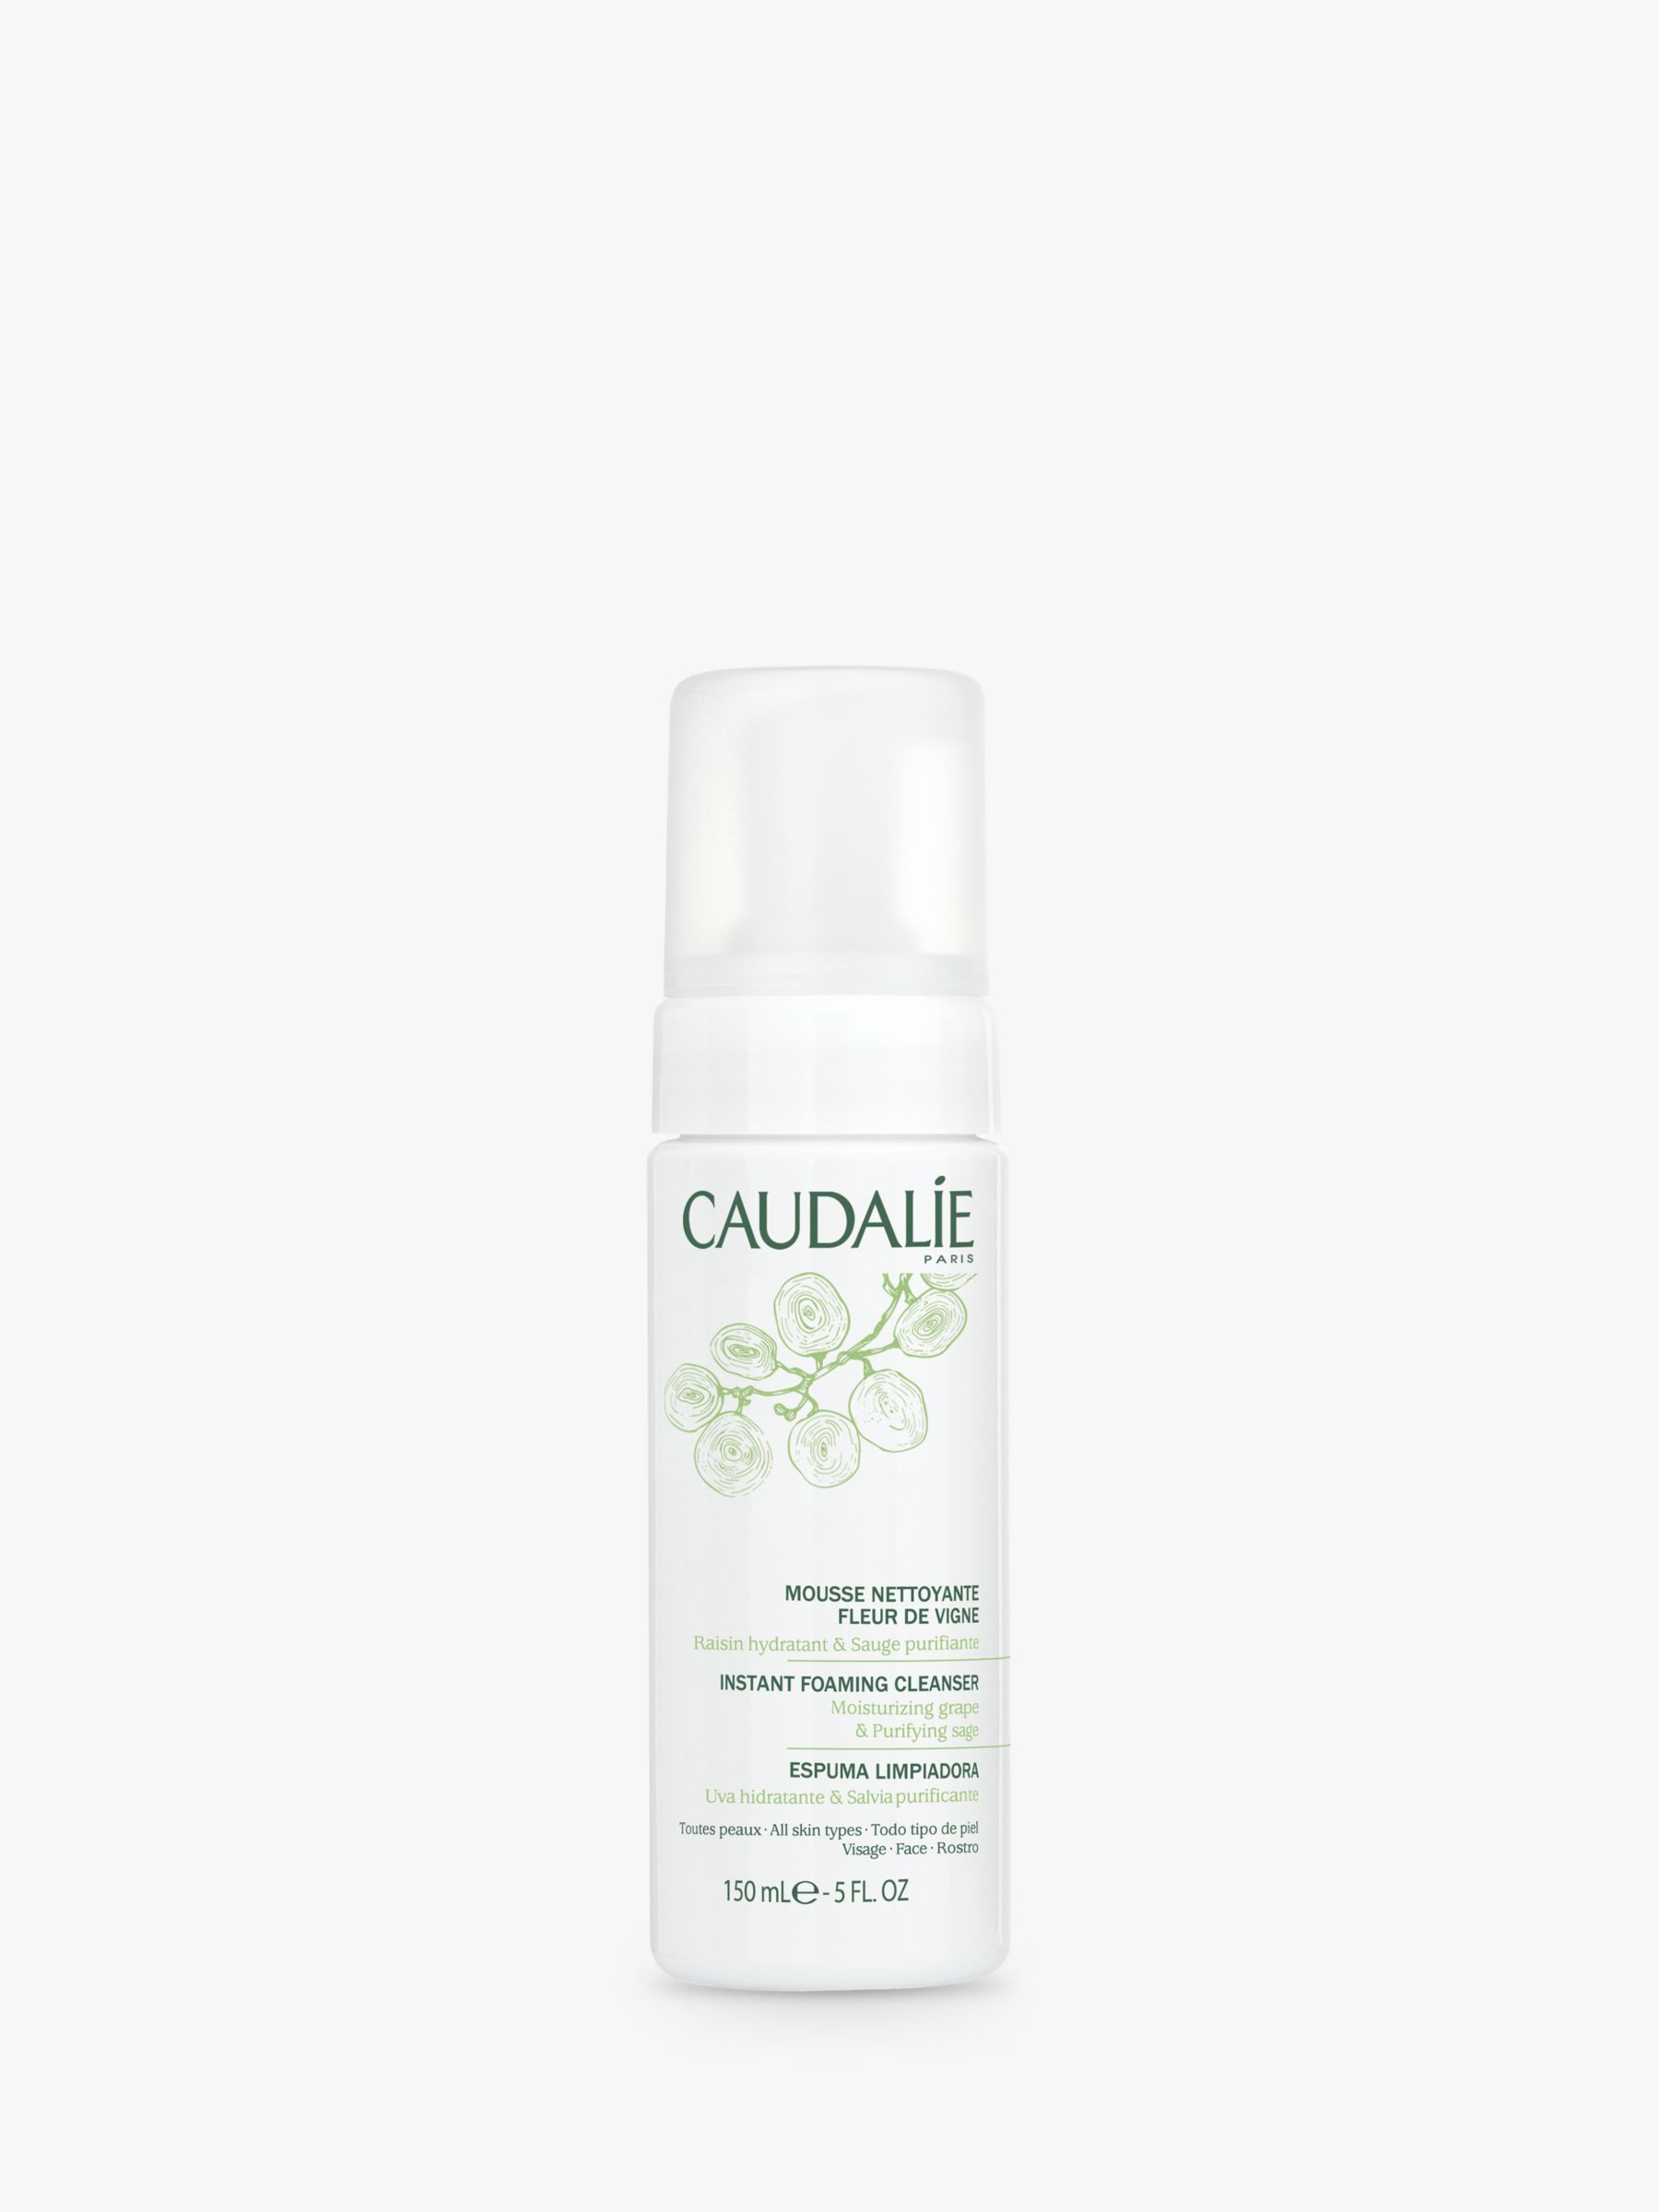 Caudalie Caudalie Instant Foaming Cleanser, 150ml